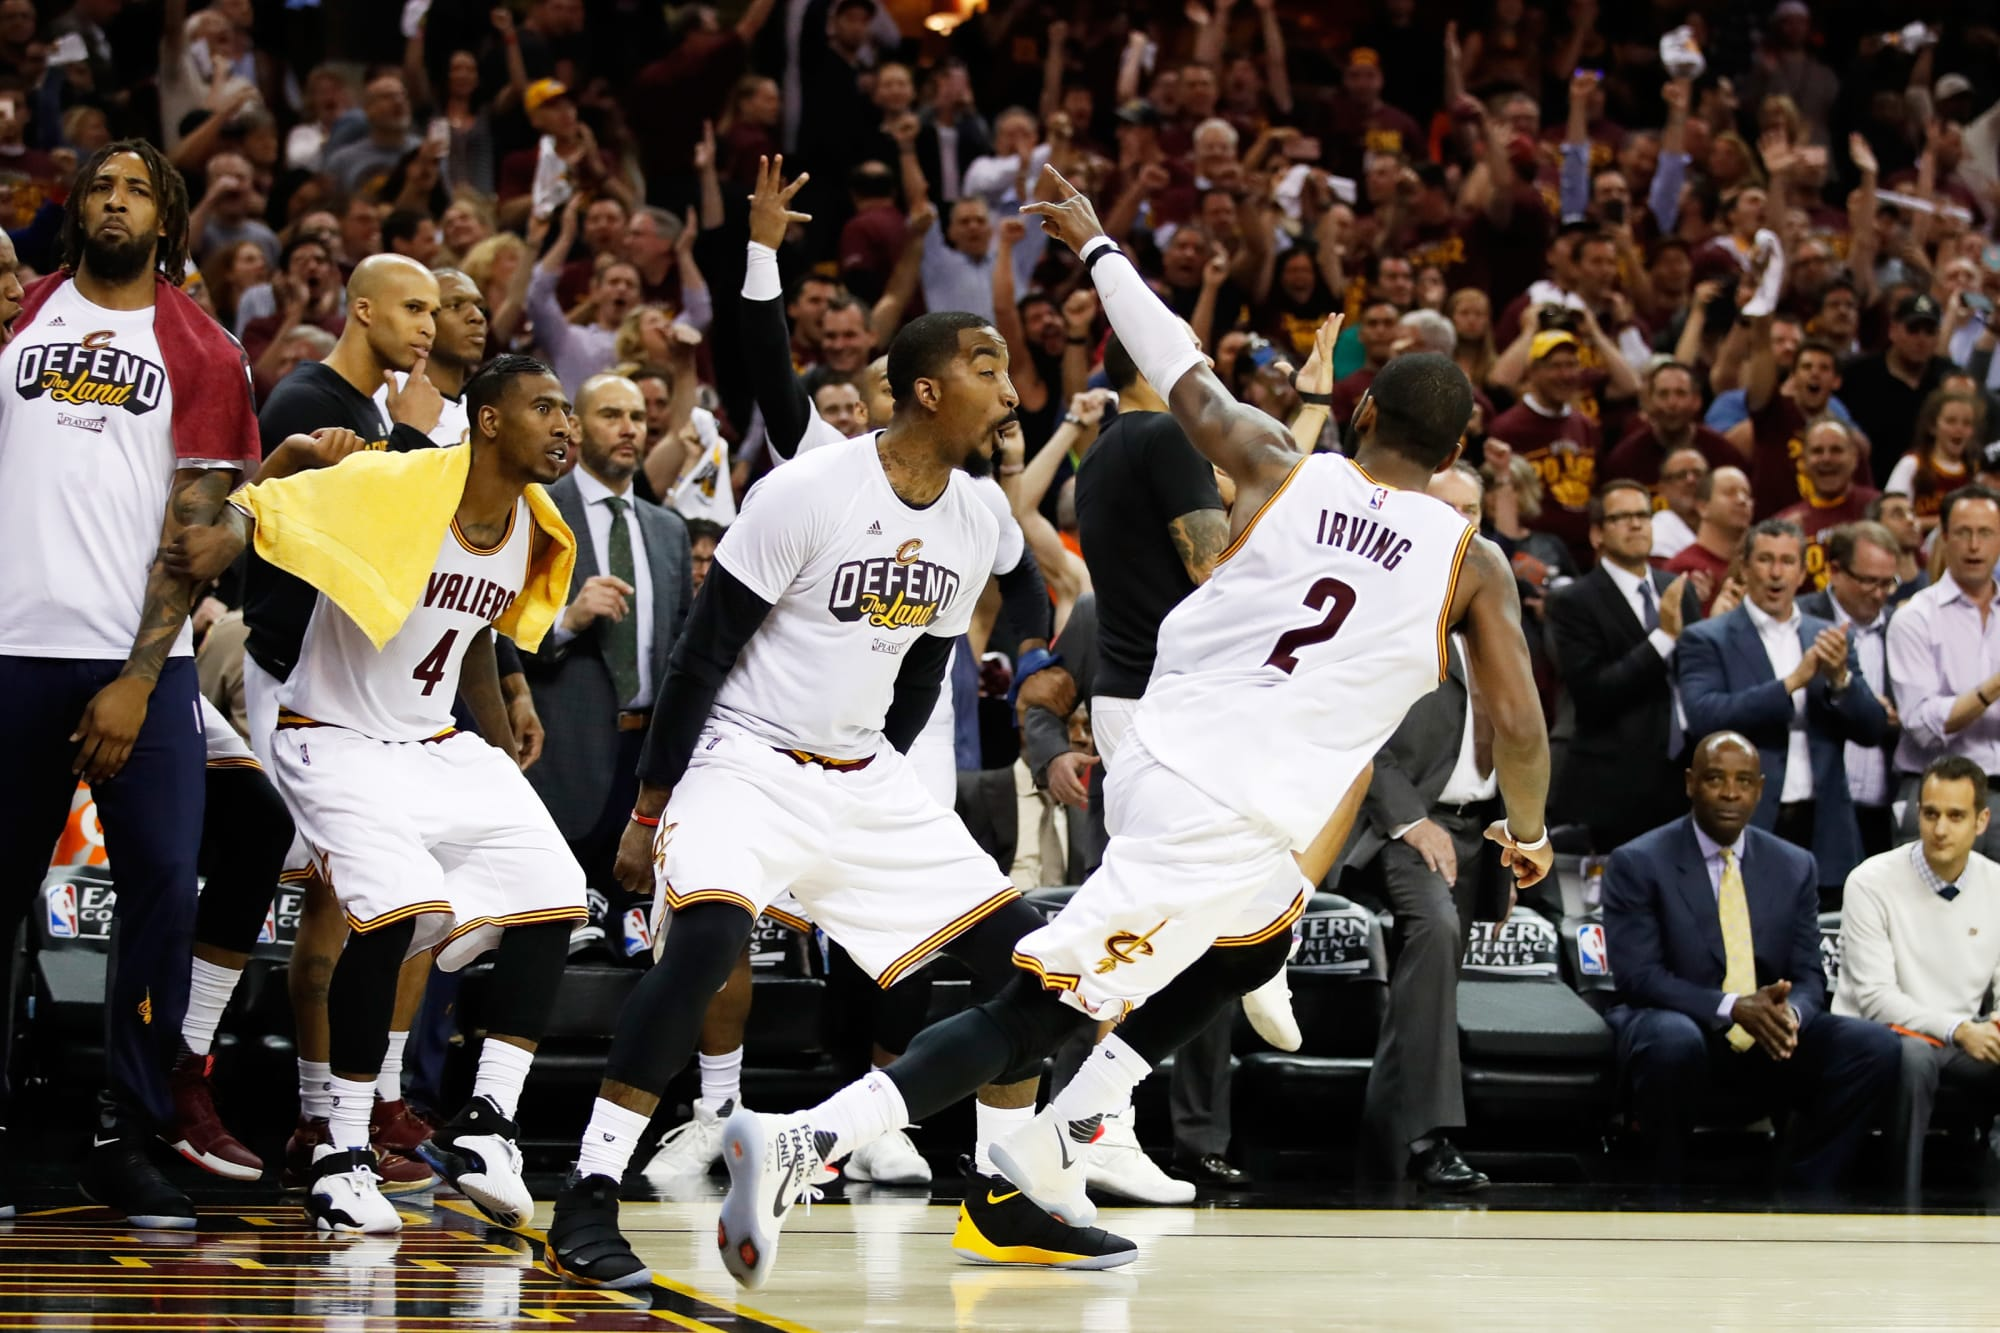 This May 23 date leads to flashback to Kyrie Irving's 42 for Cavs vs. C's